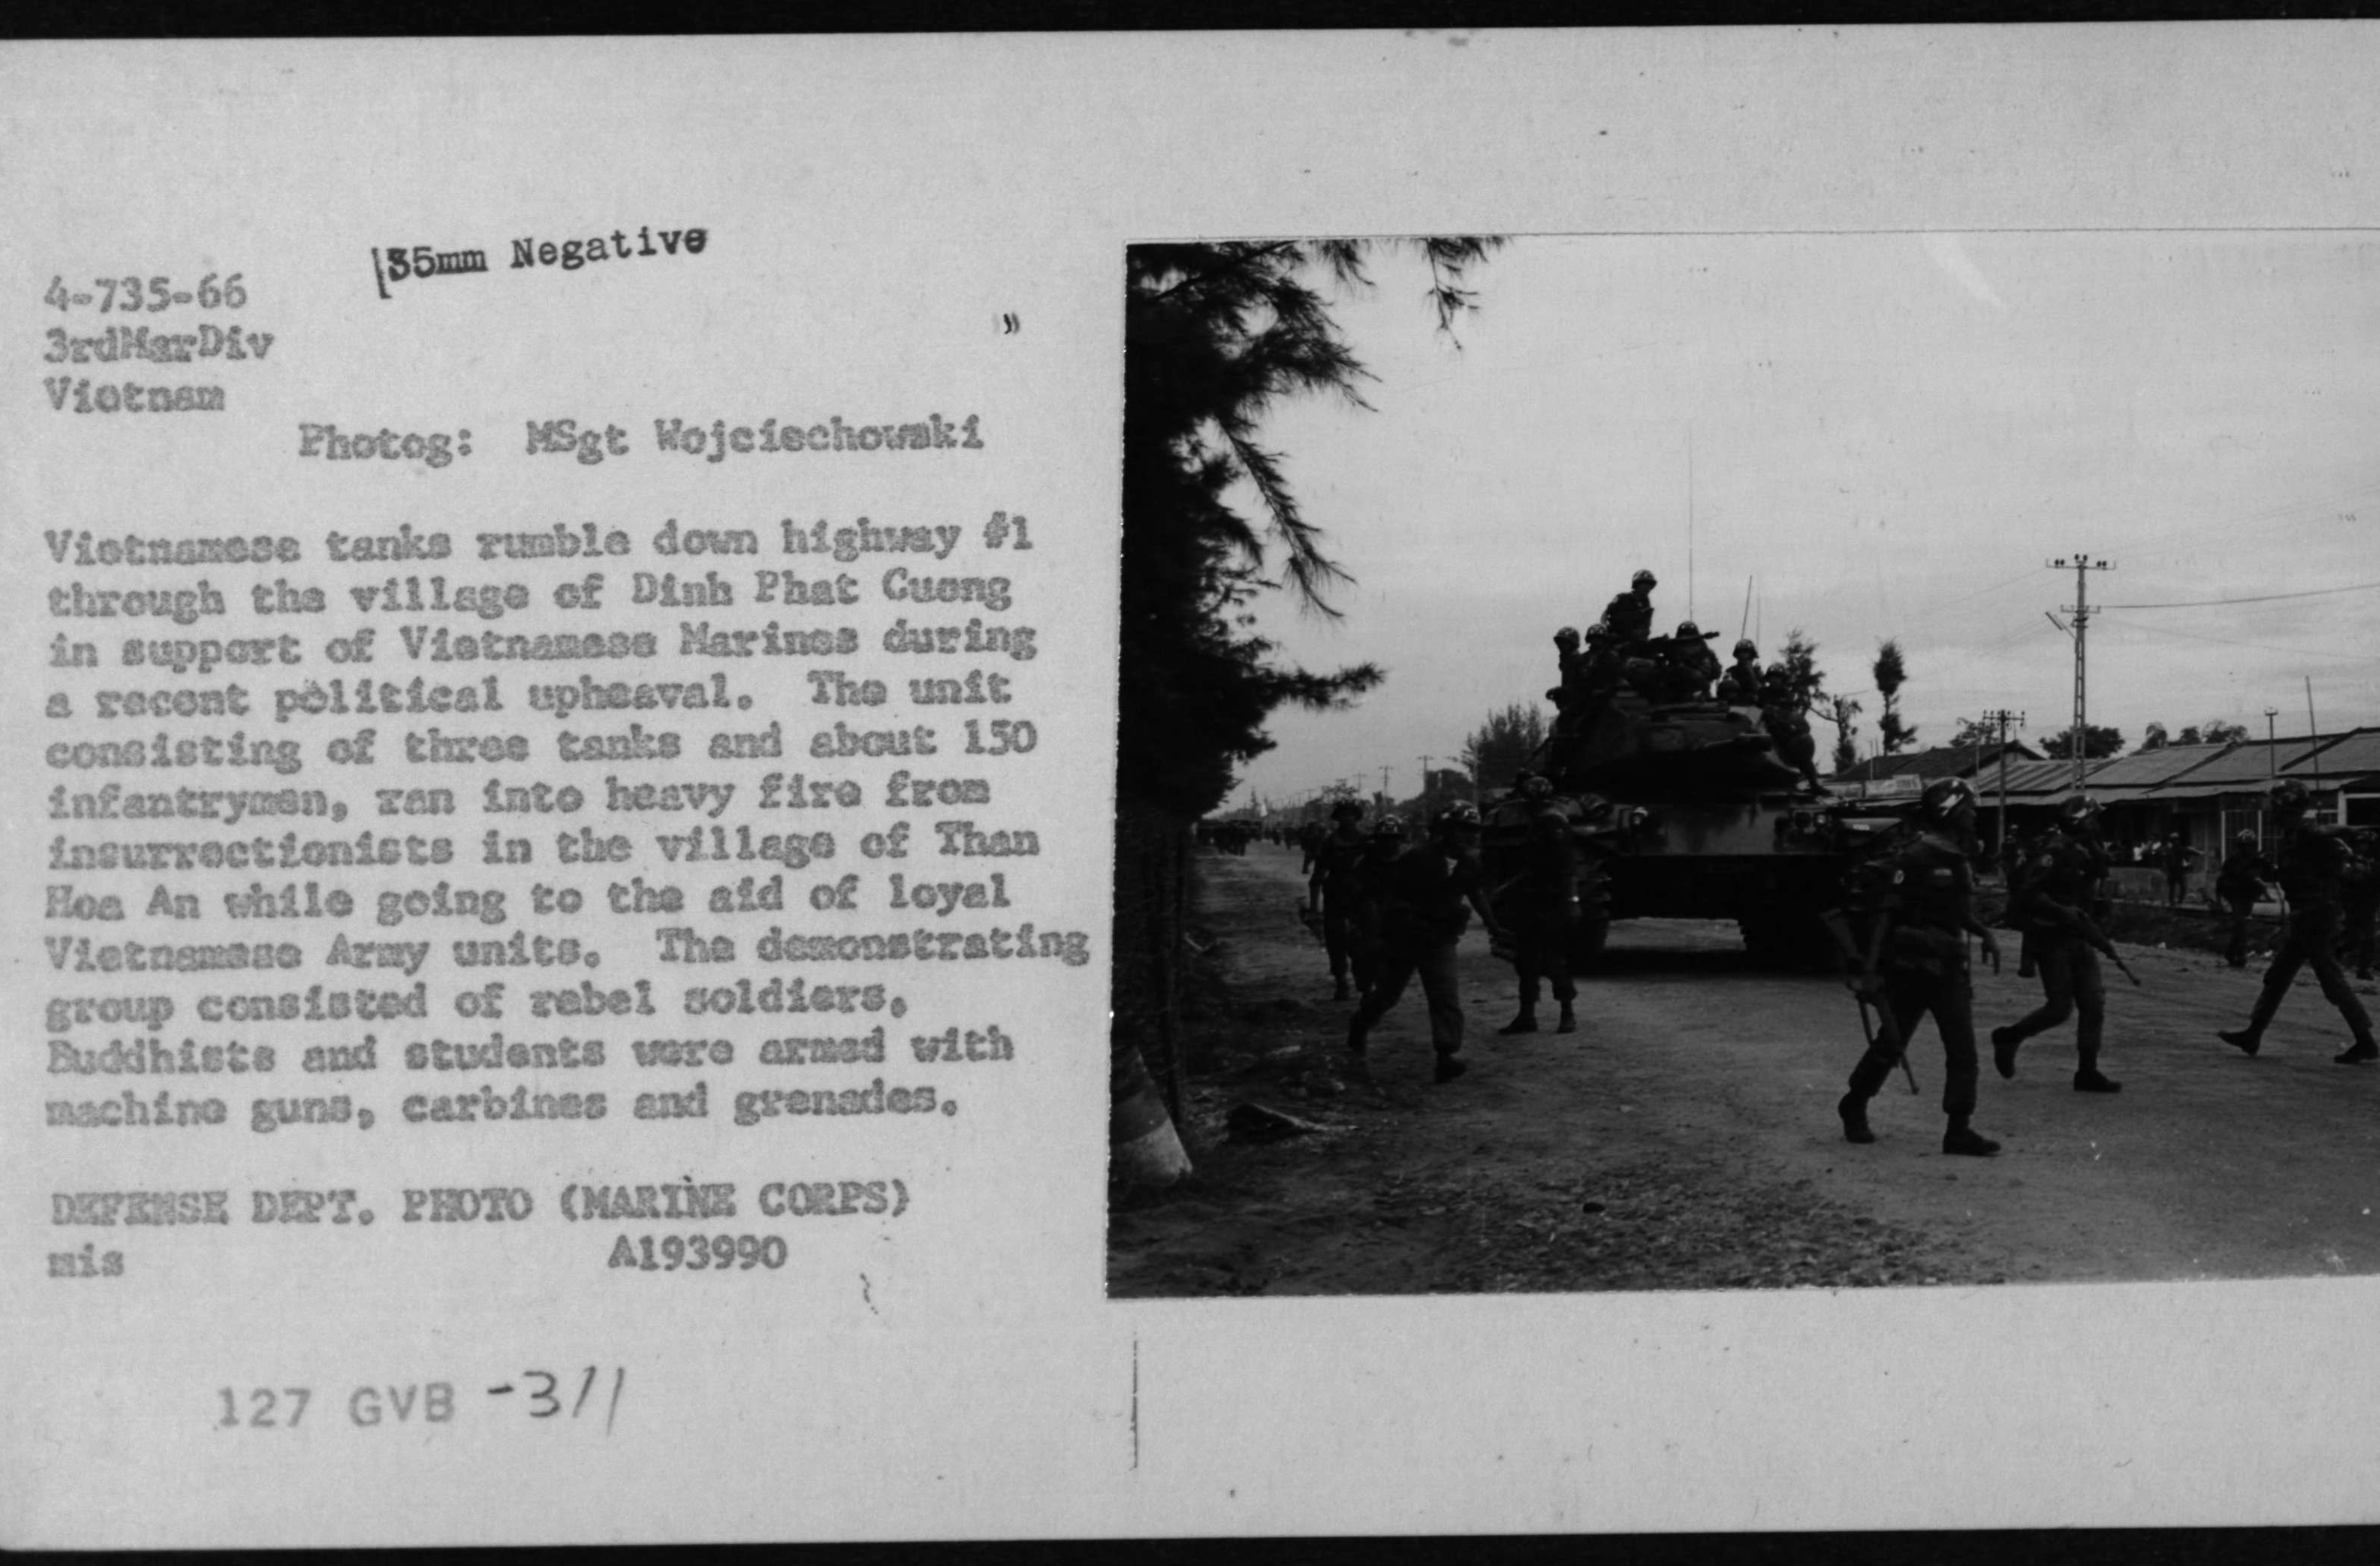 Vietnamese Tanks Rumble Through the Village of Dinh Phat Cuong